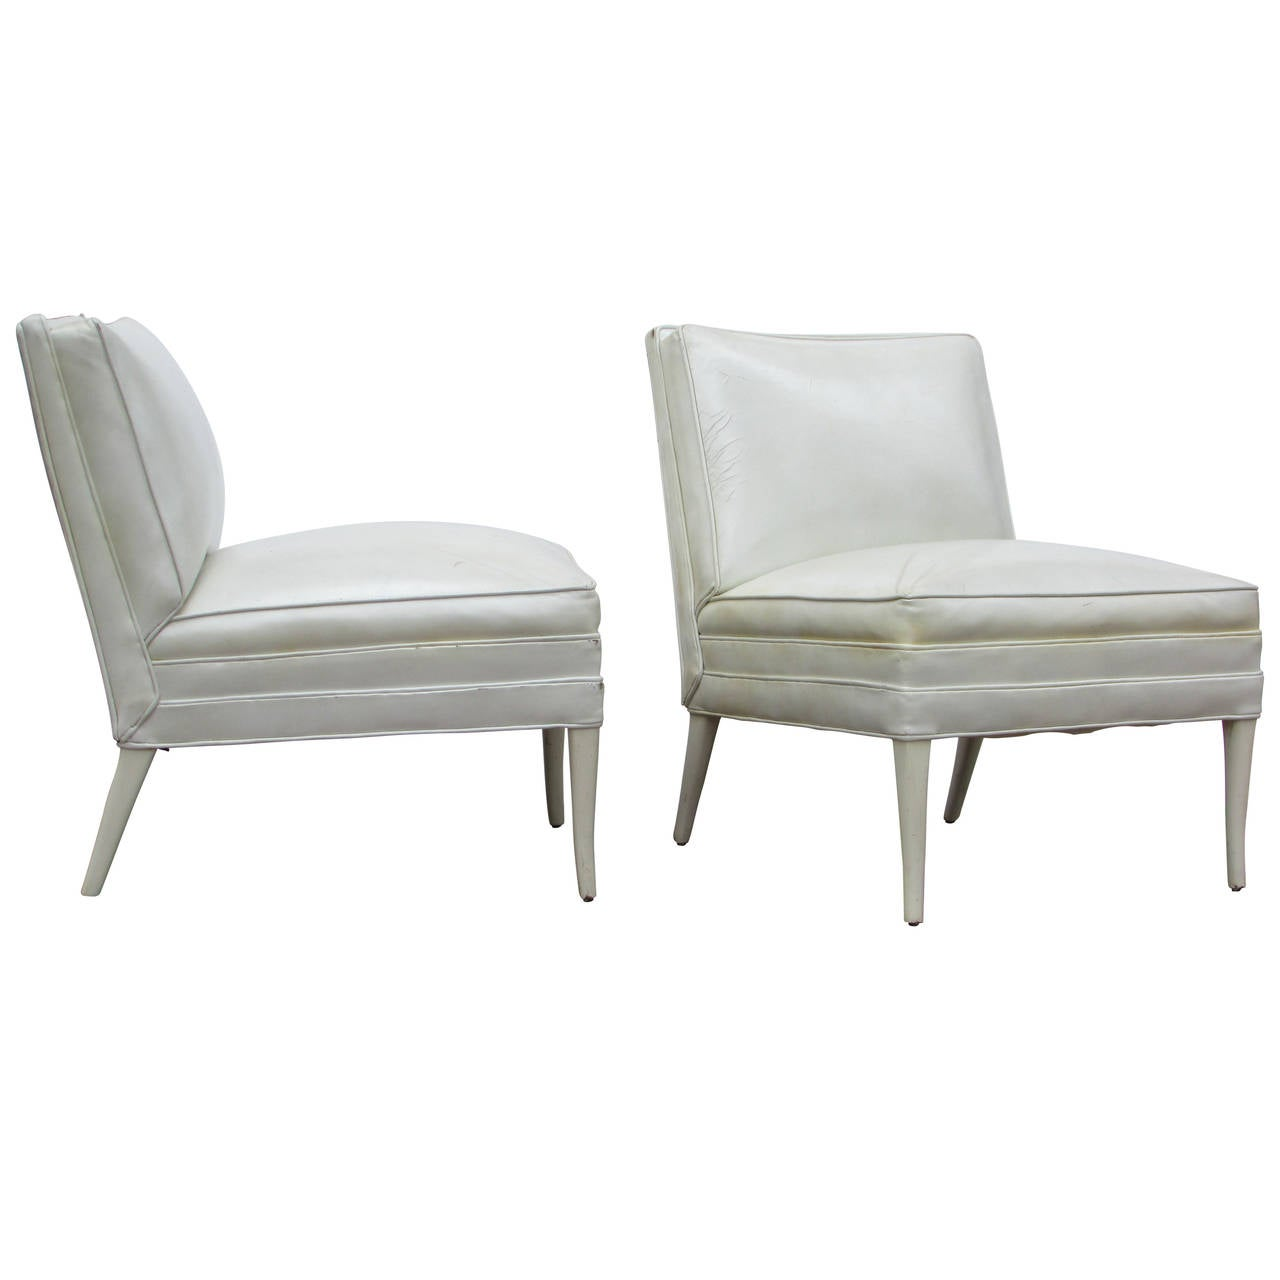 white leather chairs for sale ikea chair and footstool lounge tommi parzinger at 1stdibs